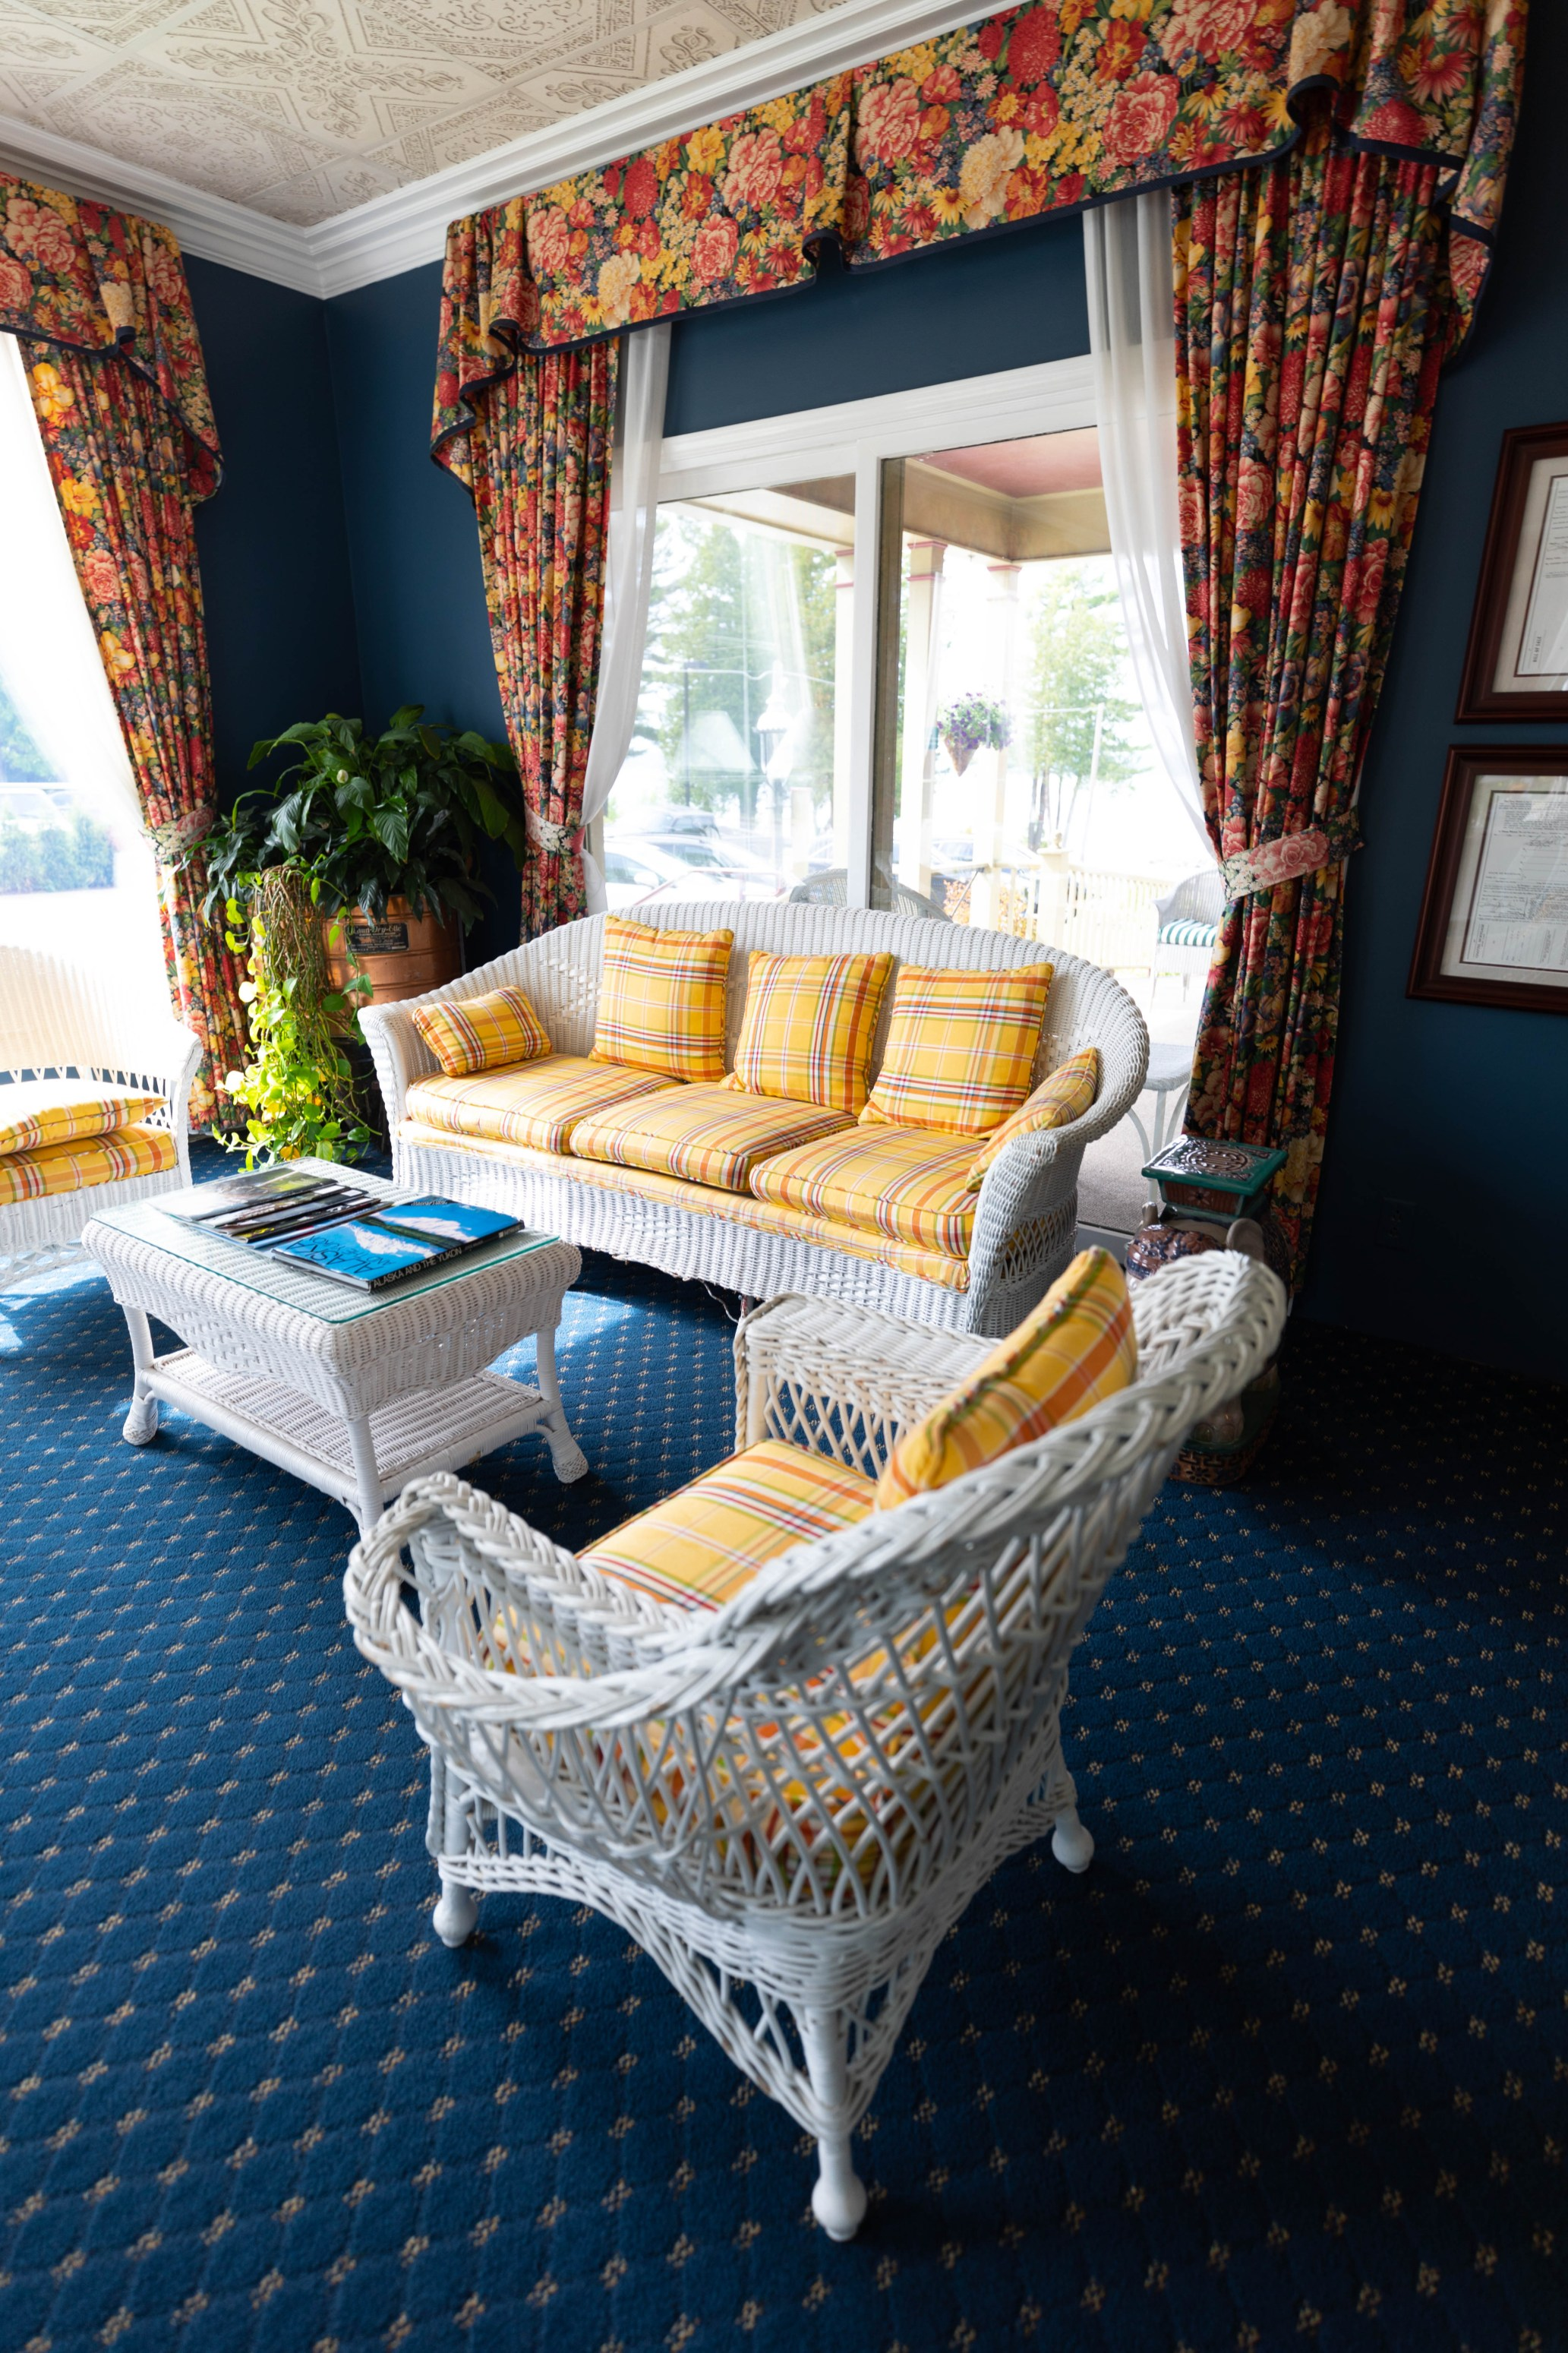 Stafford's Inn at Bay Harbor Guide and Review Luxury Hotels of the World by Annie Fairfax